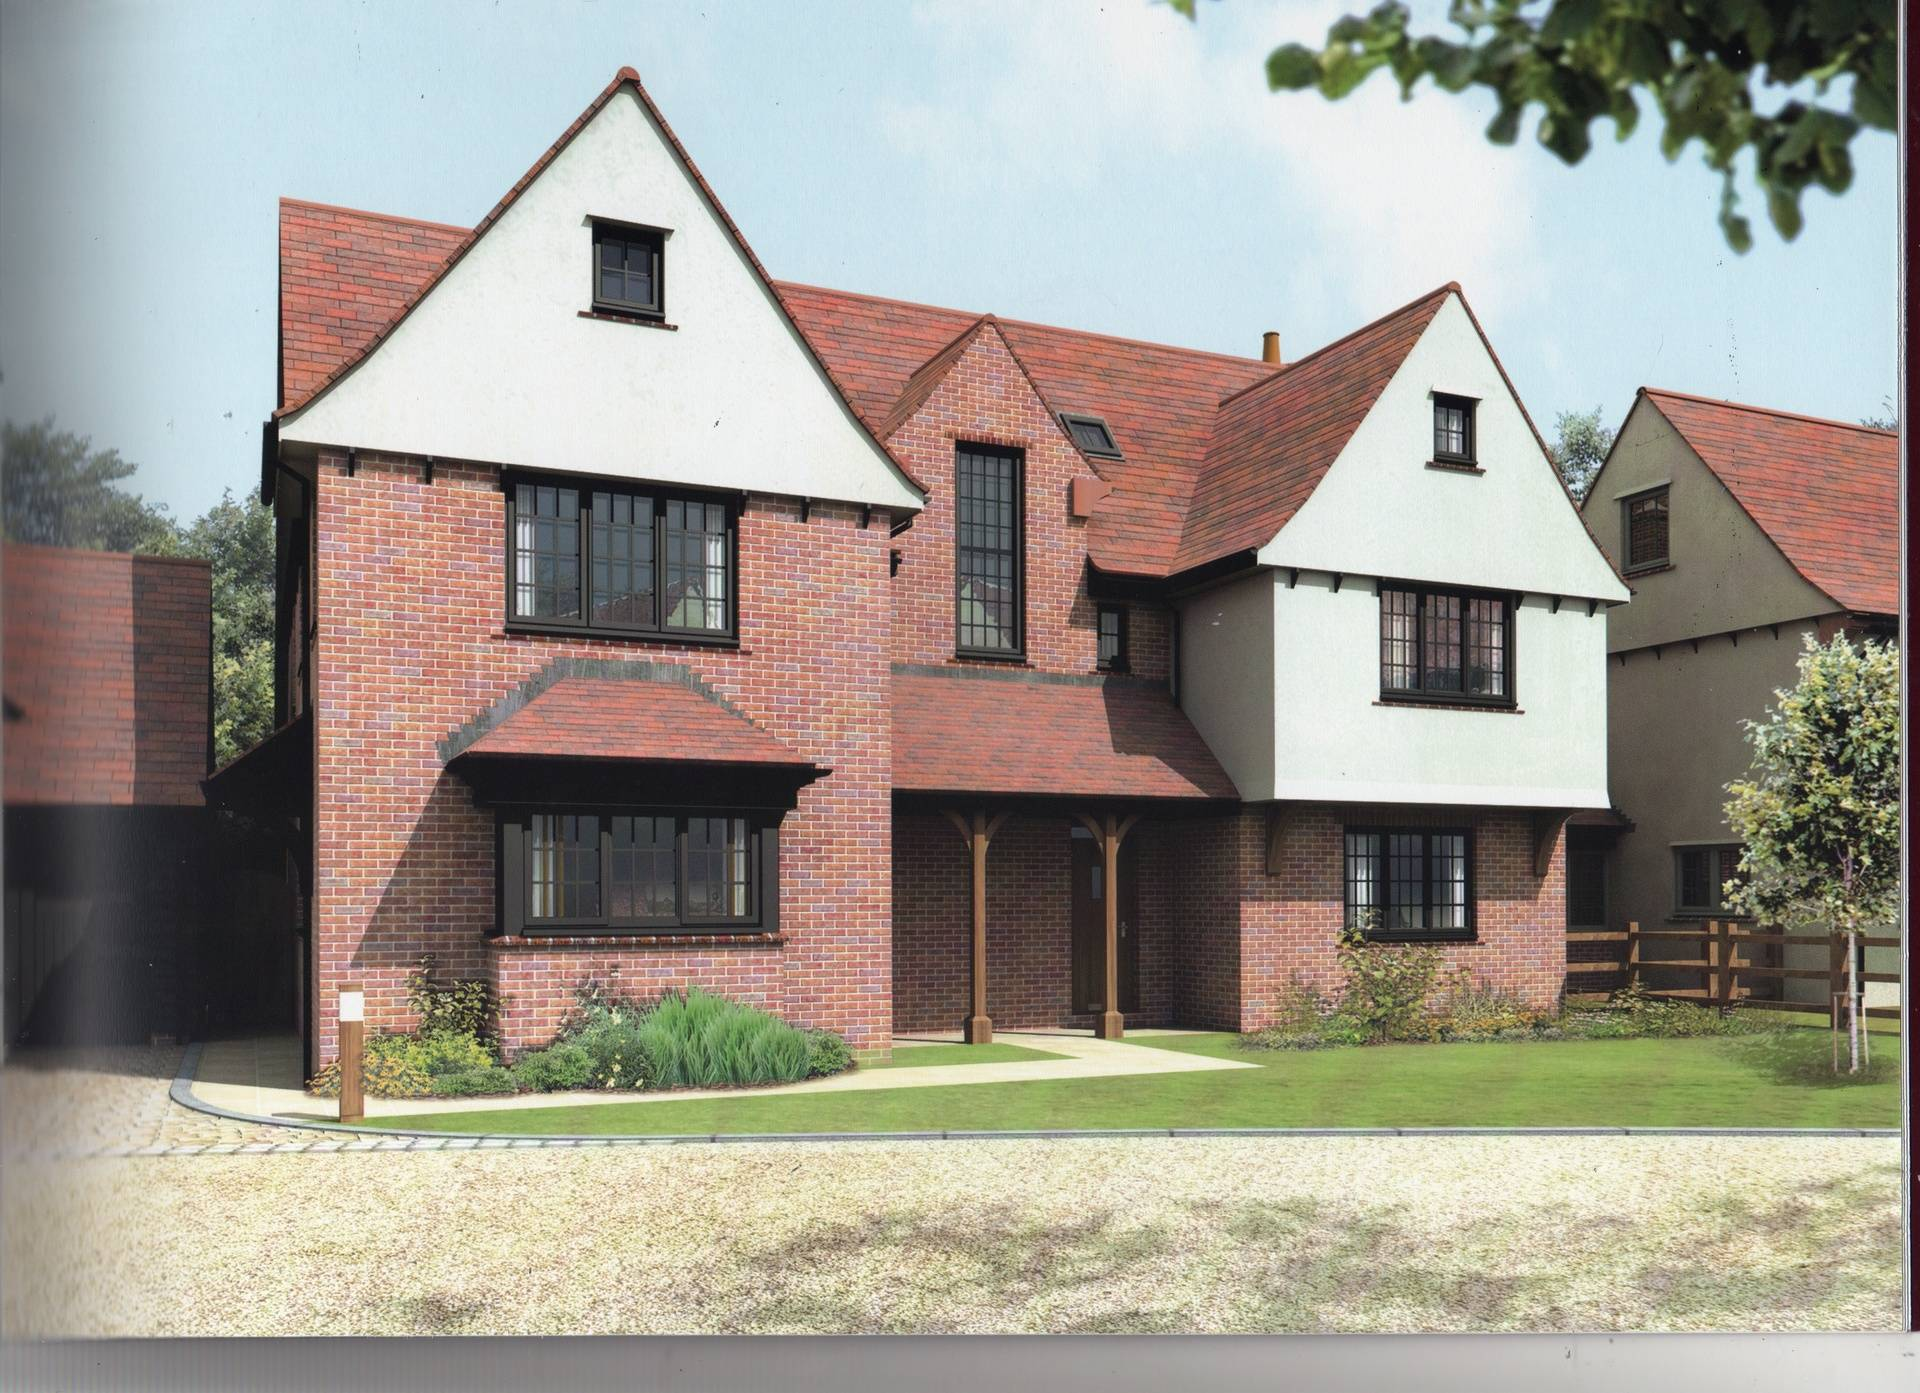 Plot 6 Potters Wood Herts